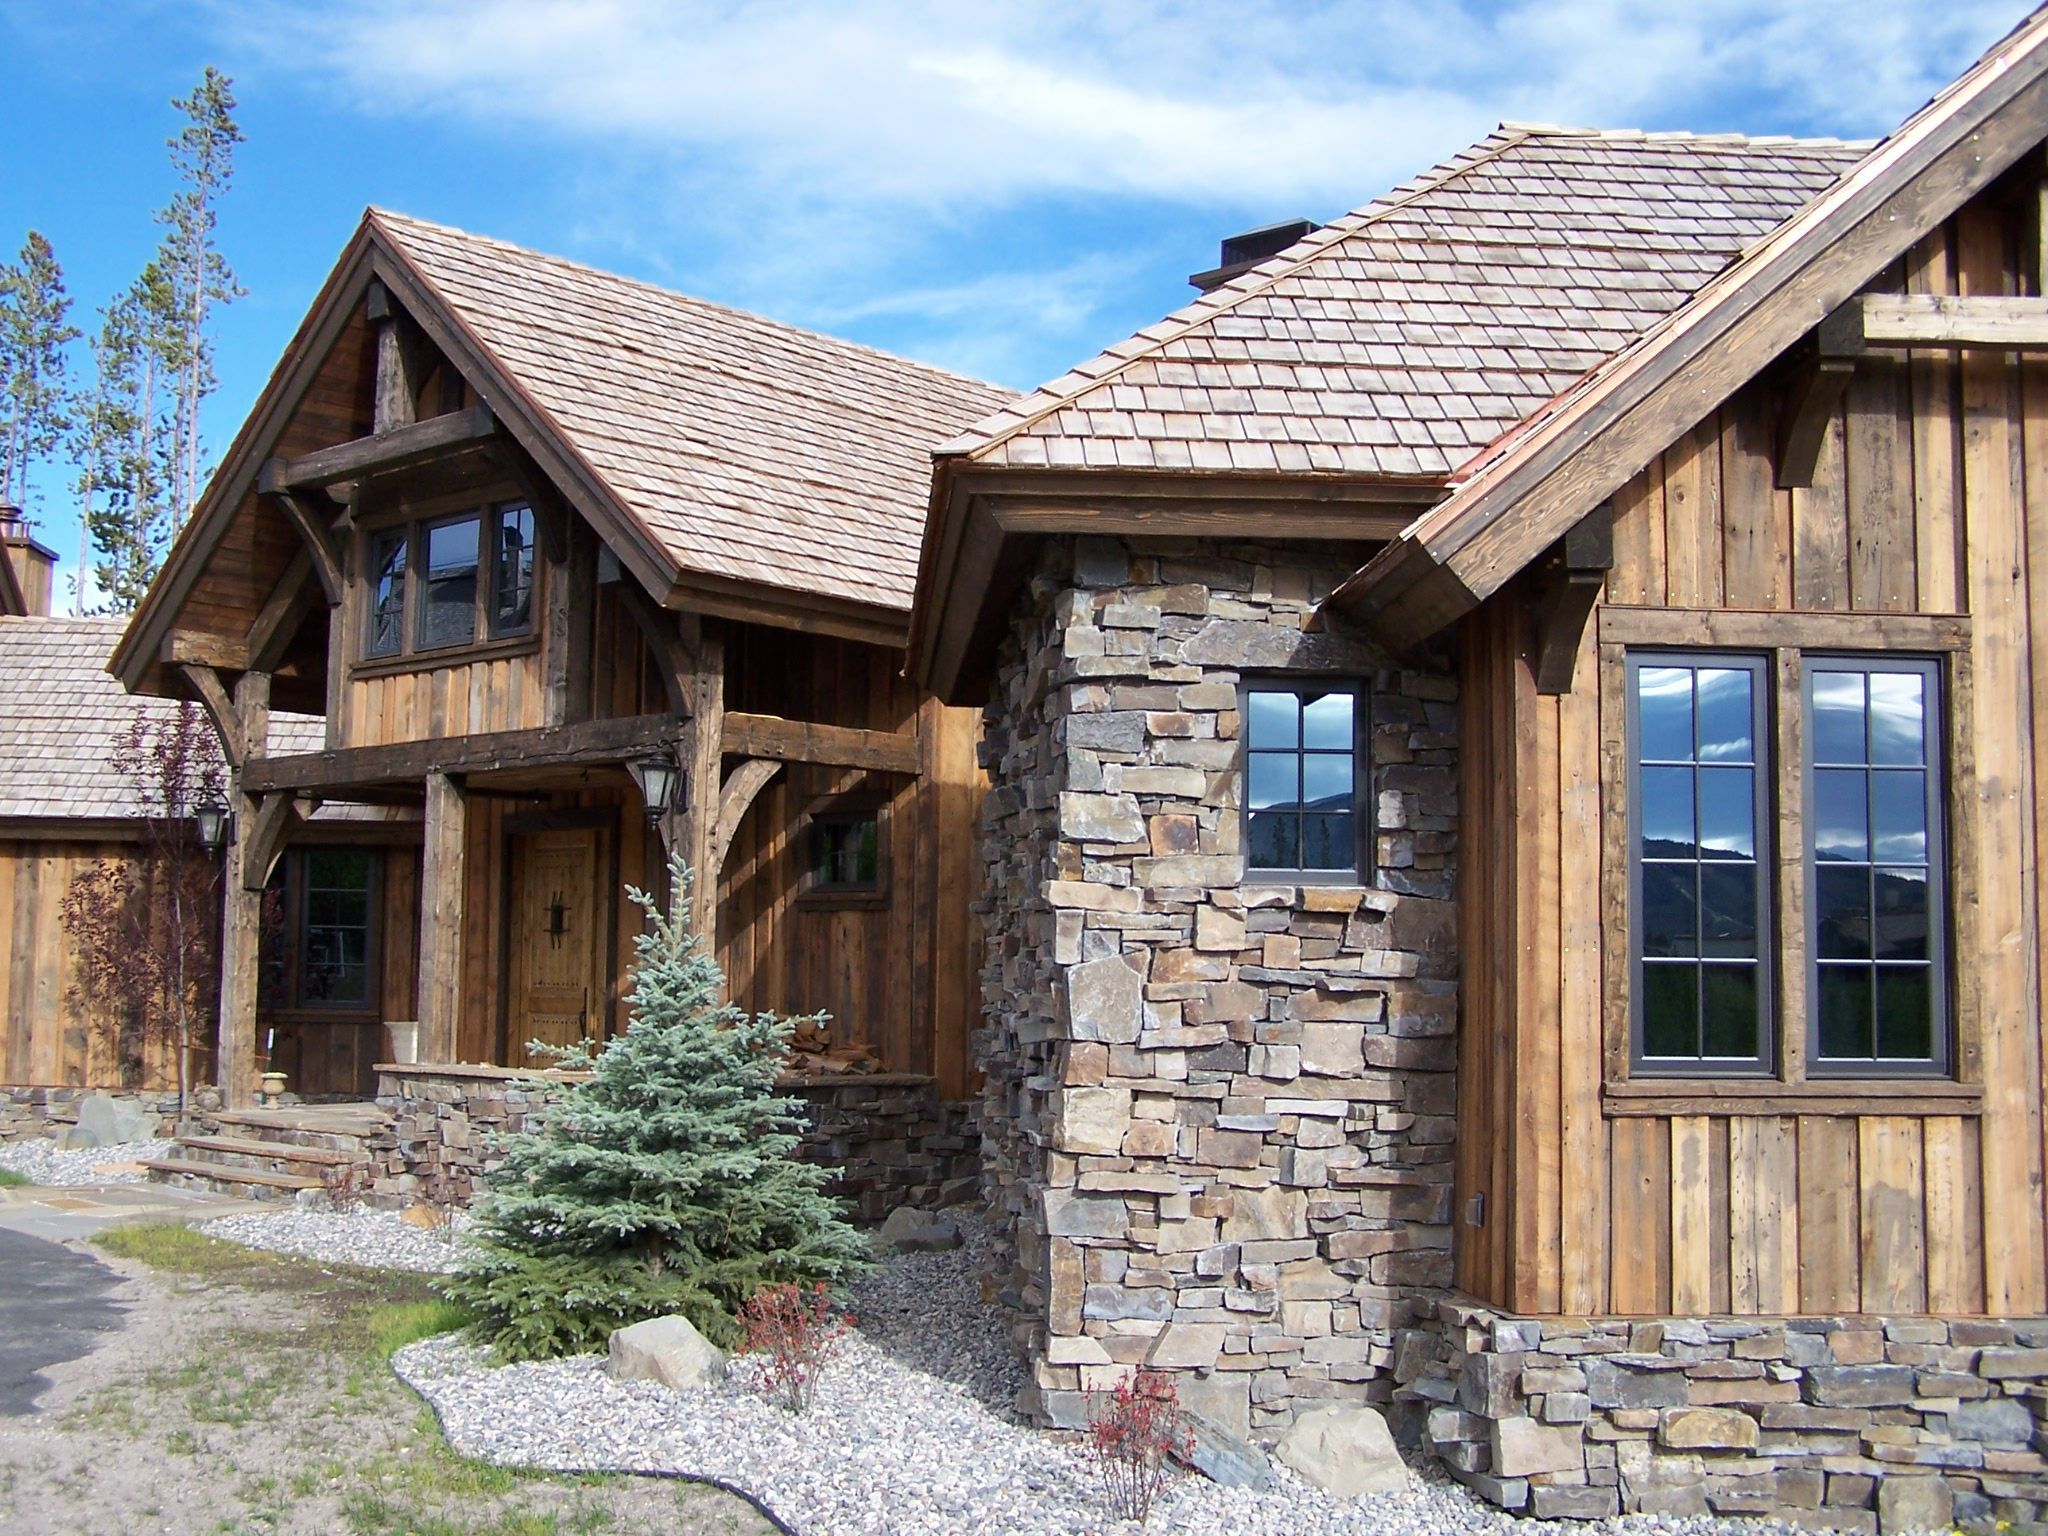 17 Best Ideas About Mountain Home Exterior On Pinterest Cabin ...